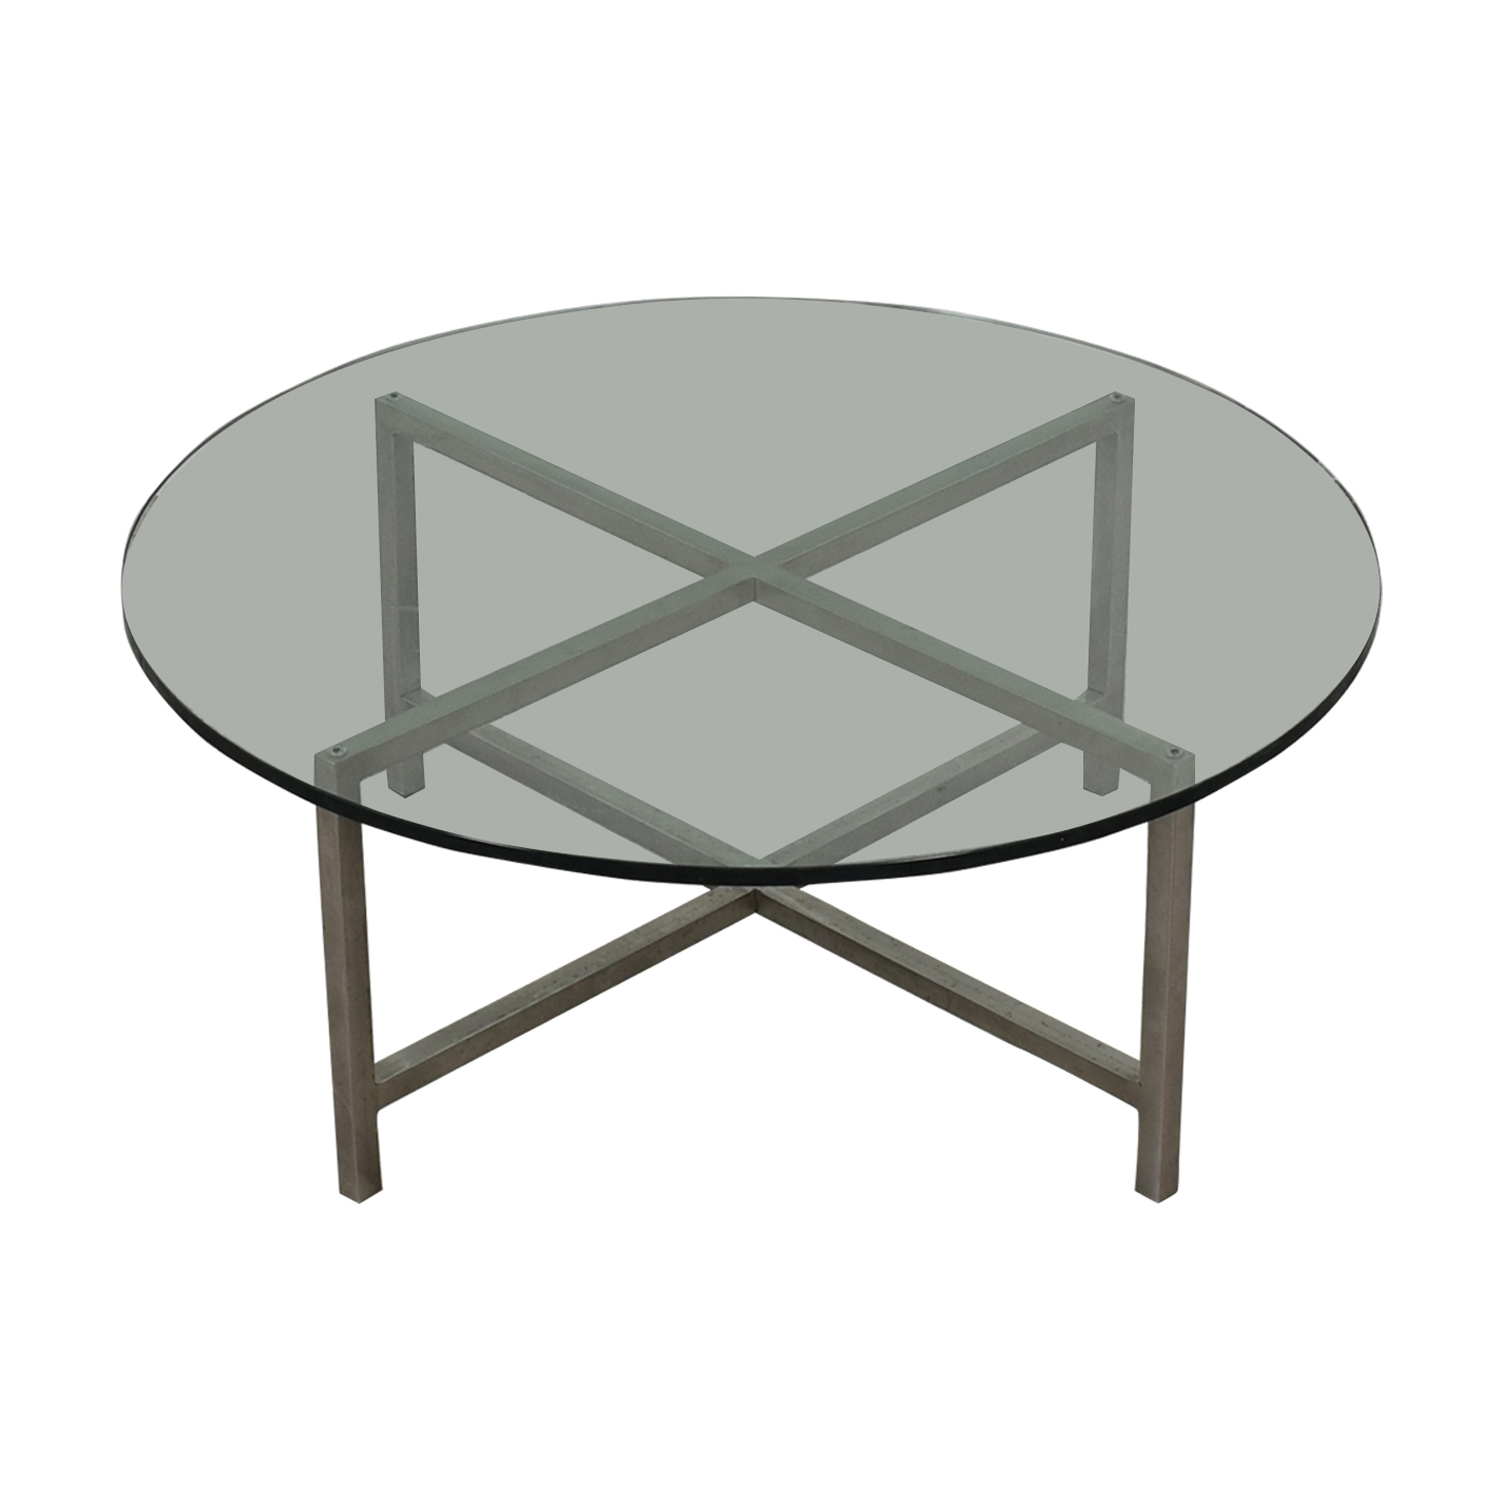 buy Crate & Barrel Crate & Barrel Round Glass and Chrome Table online